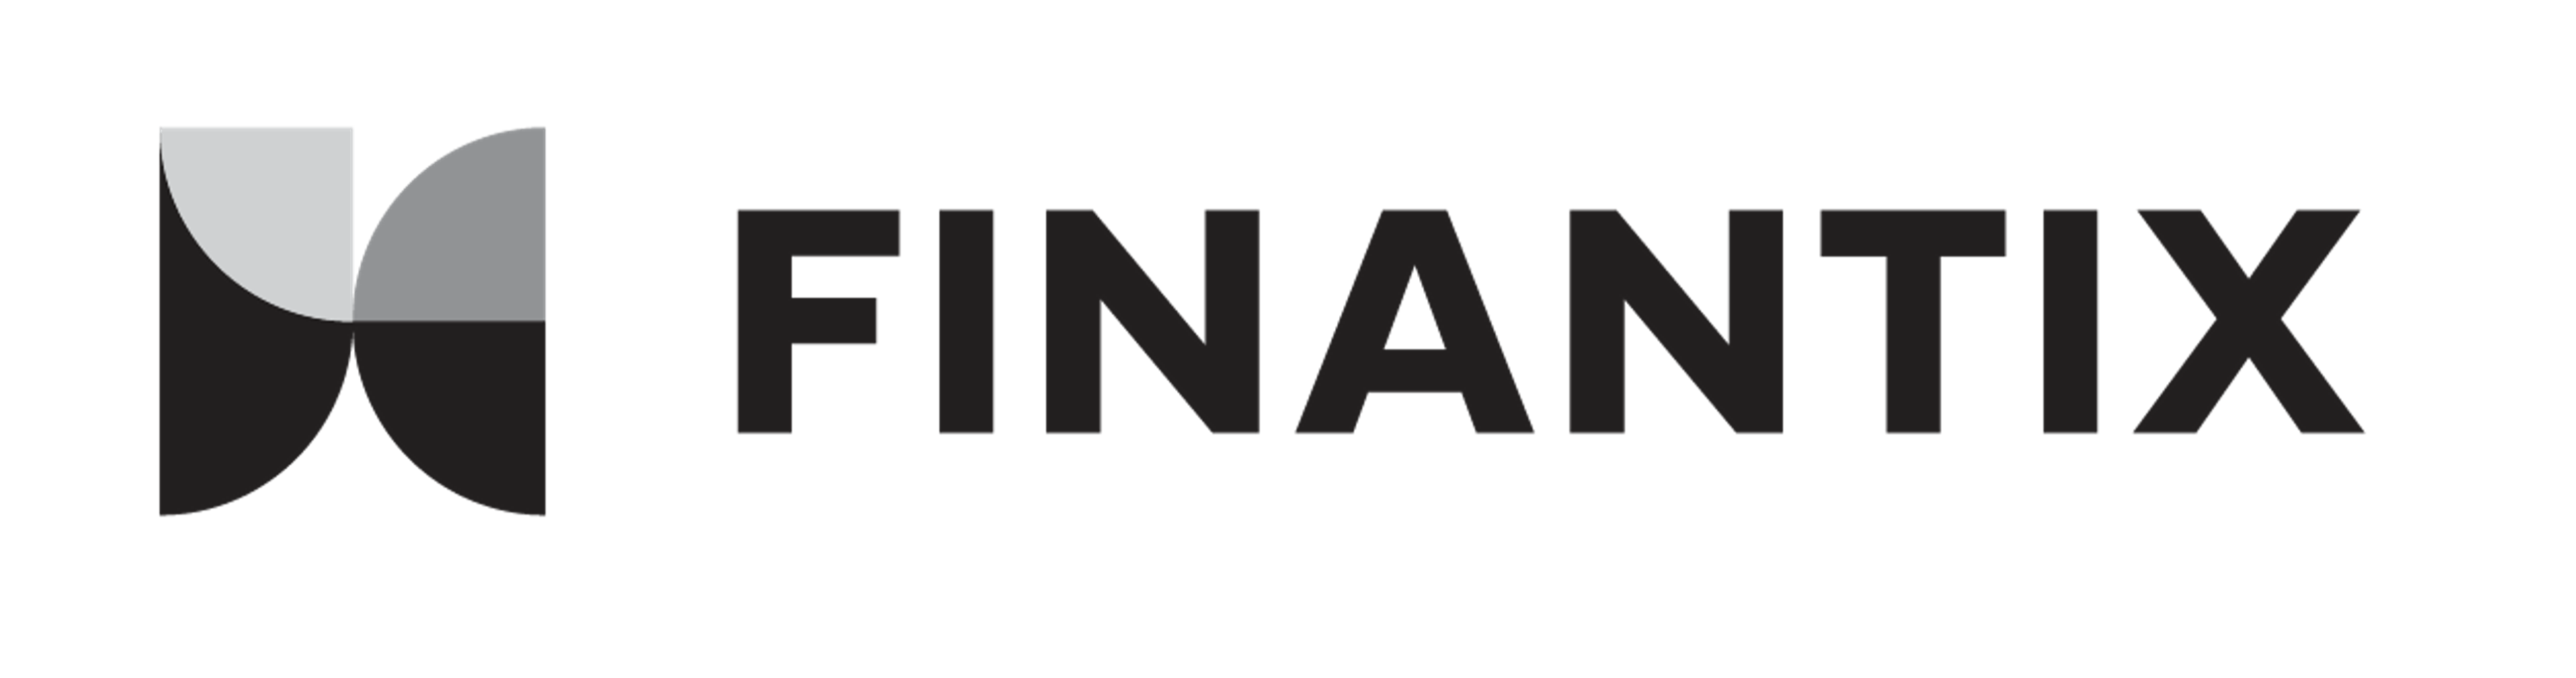 Finantix Continues to Extend Product Offer With Integration of Next Best Action